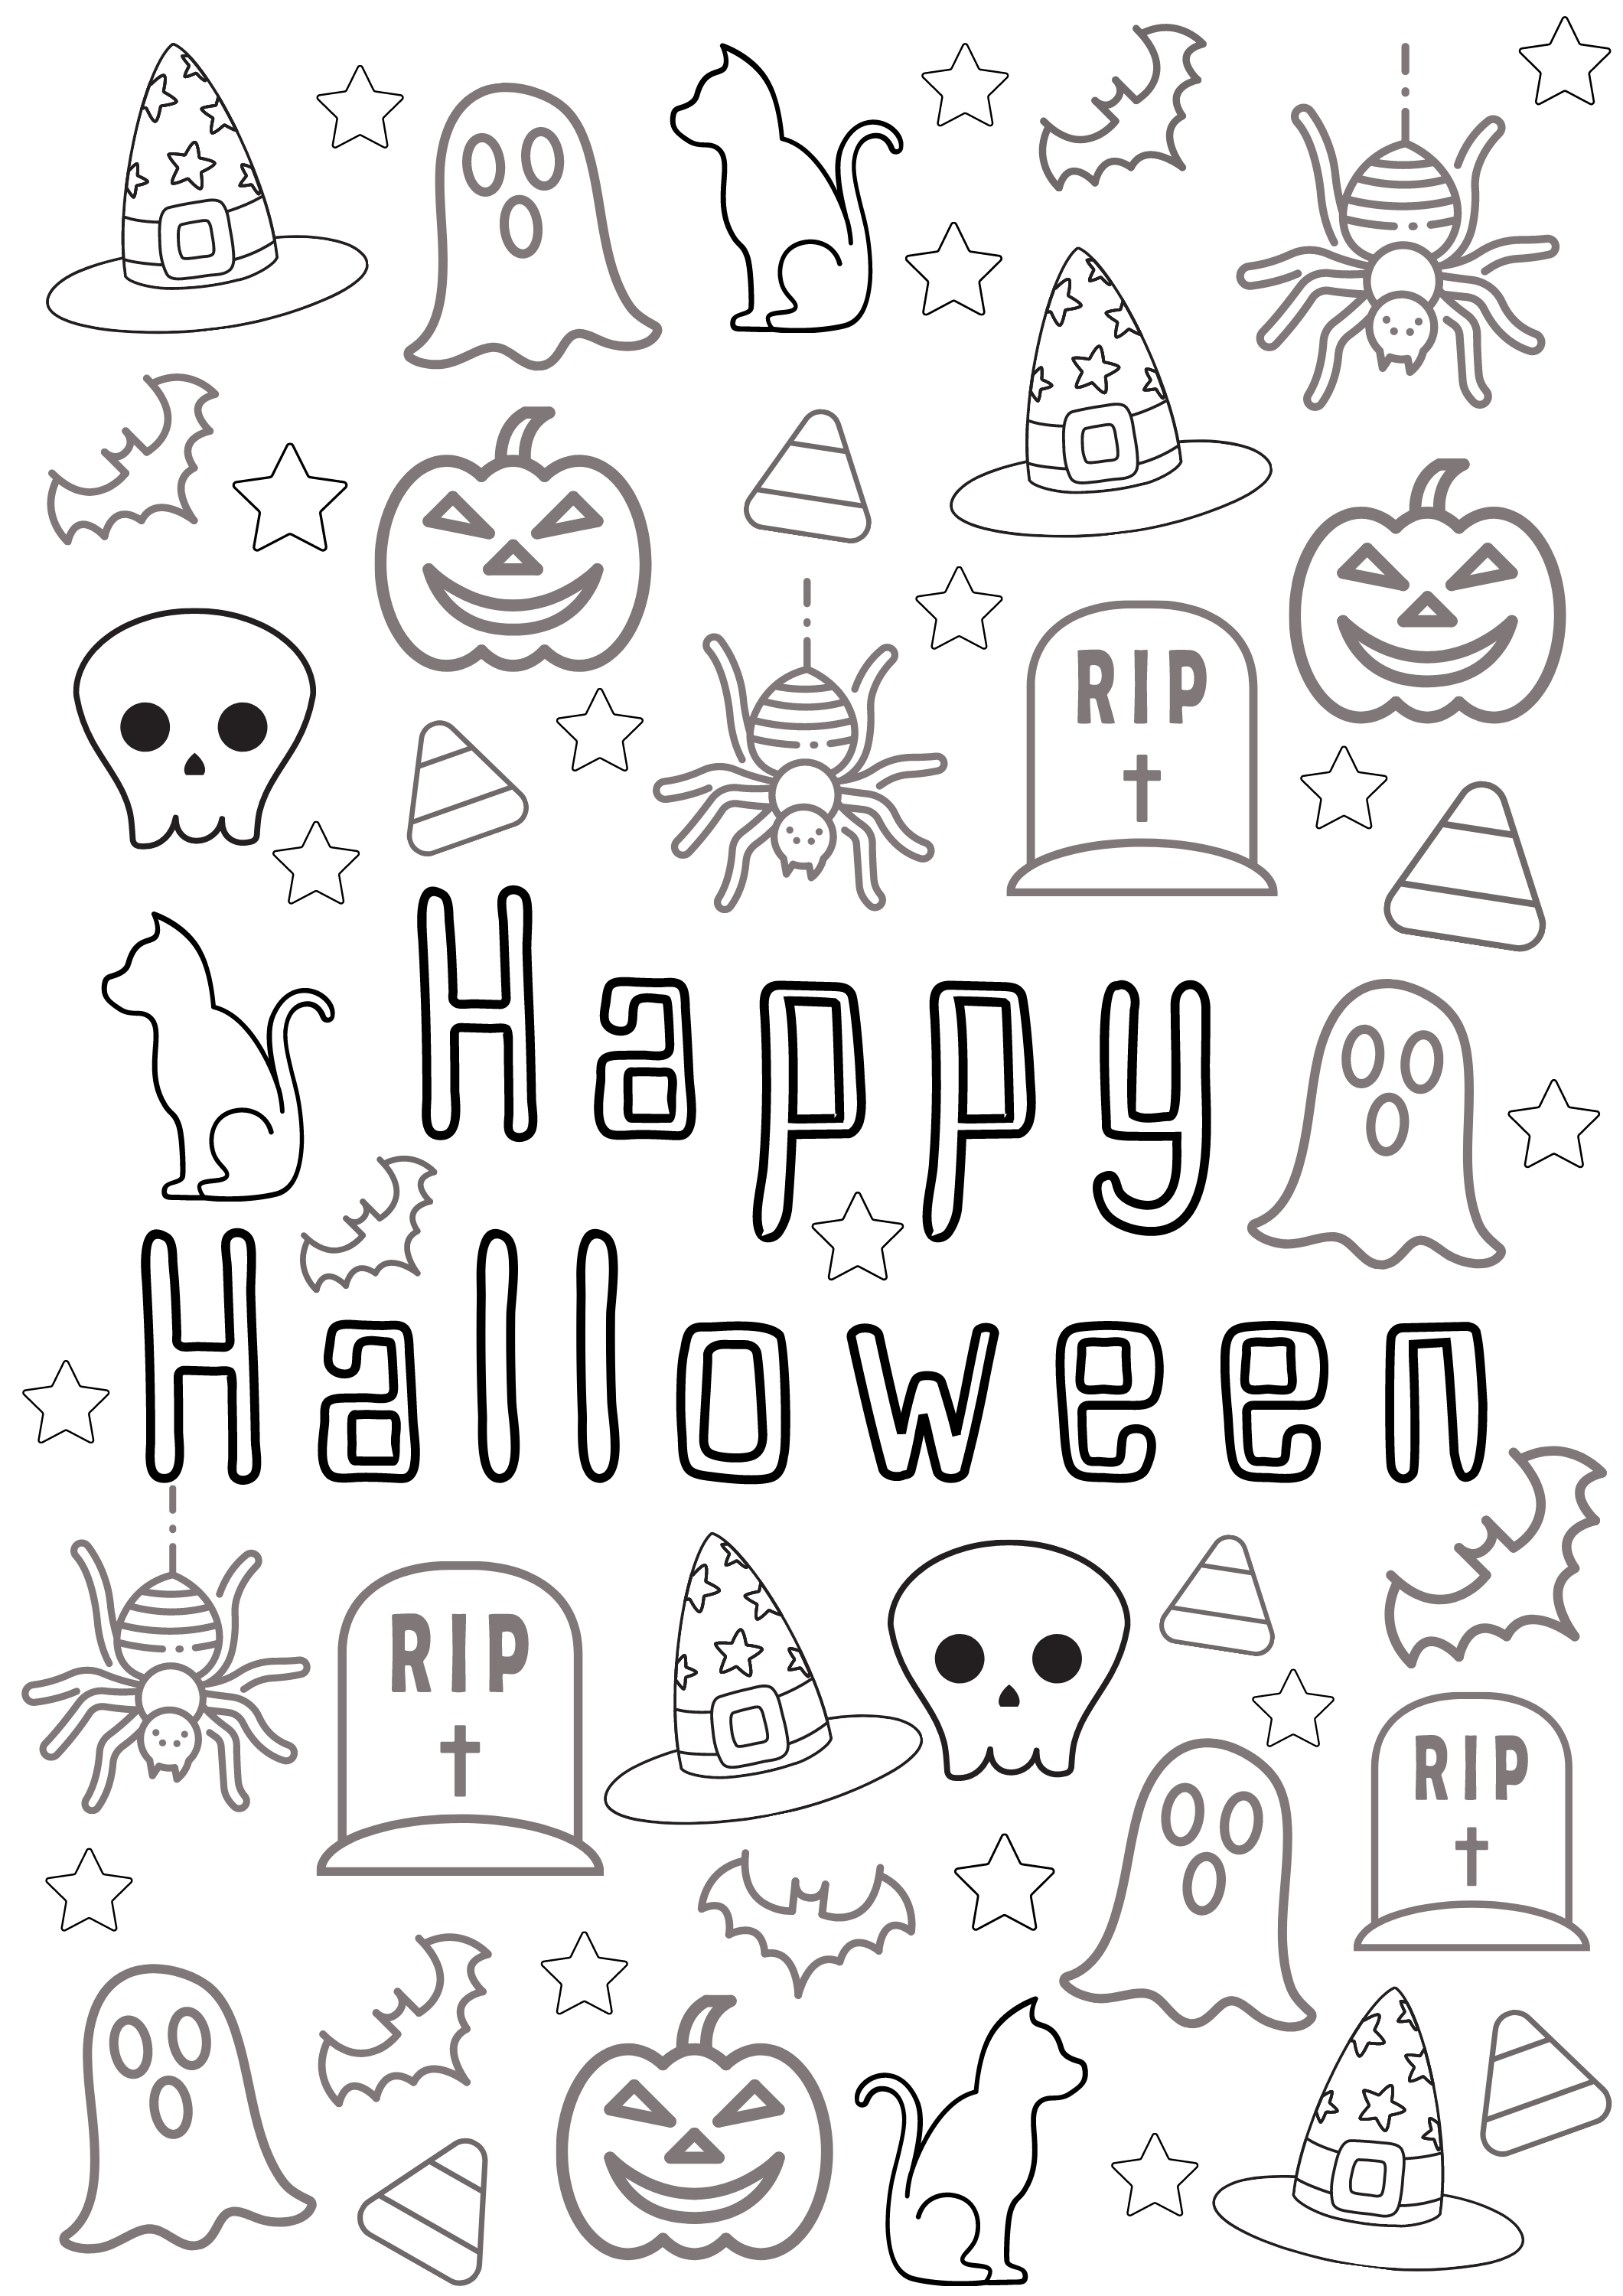 5 Halloween Colouring Sheets Diy Halloween Coloring Pages For Kids Printables Activities Halloween Party Instant Download In 2021 Halloween Coloring Halloween Coloring Pages Halloween Coloring Sheets